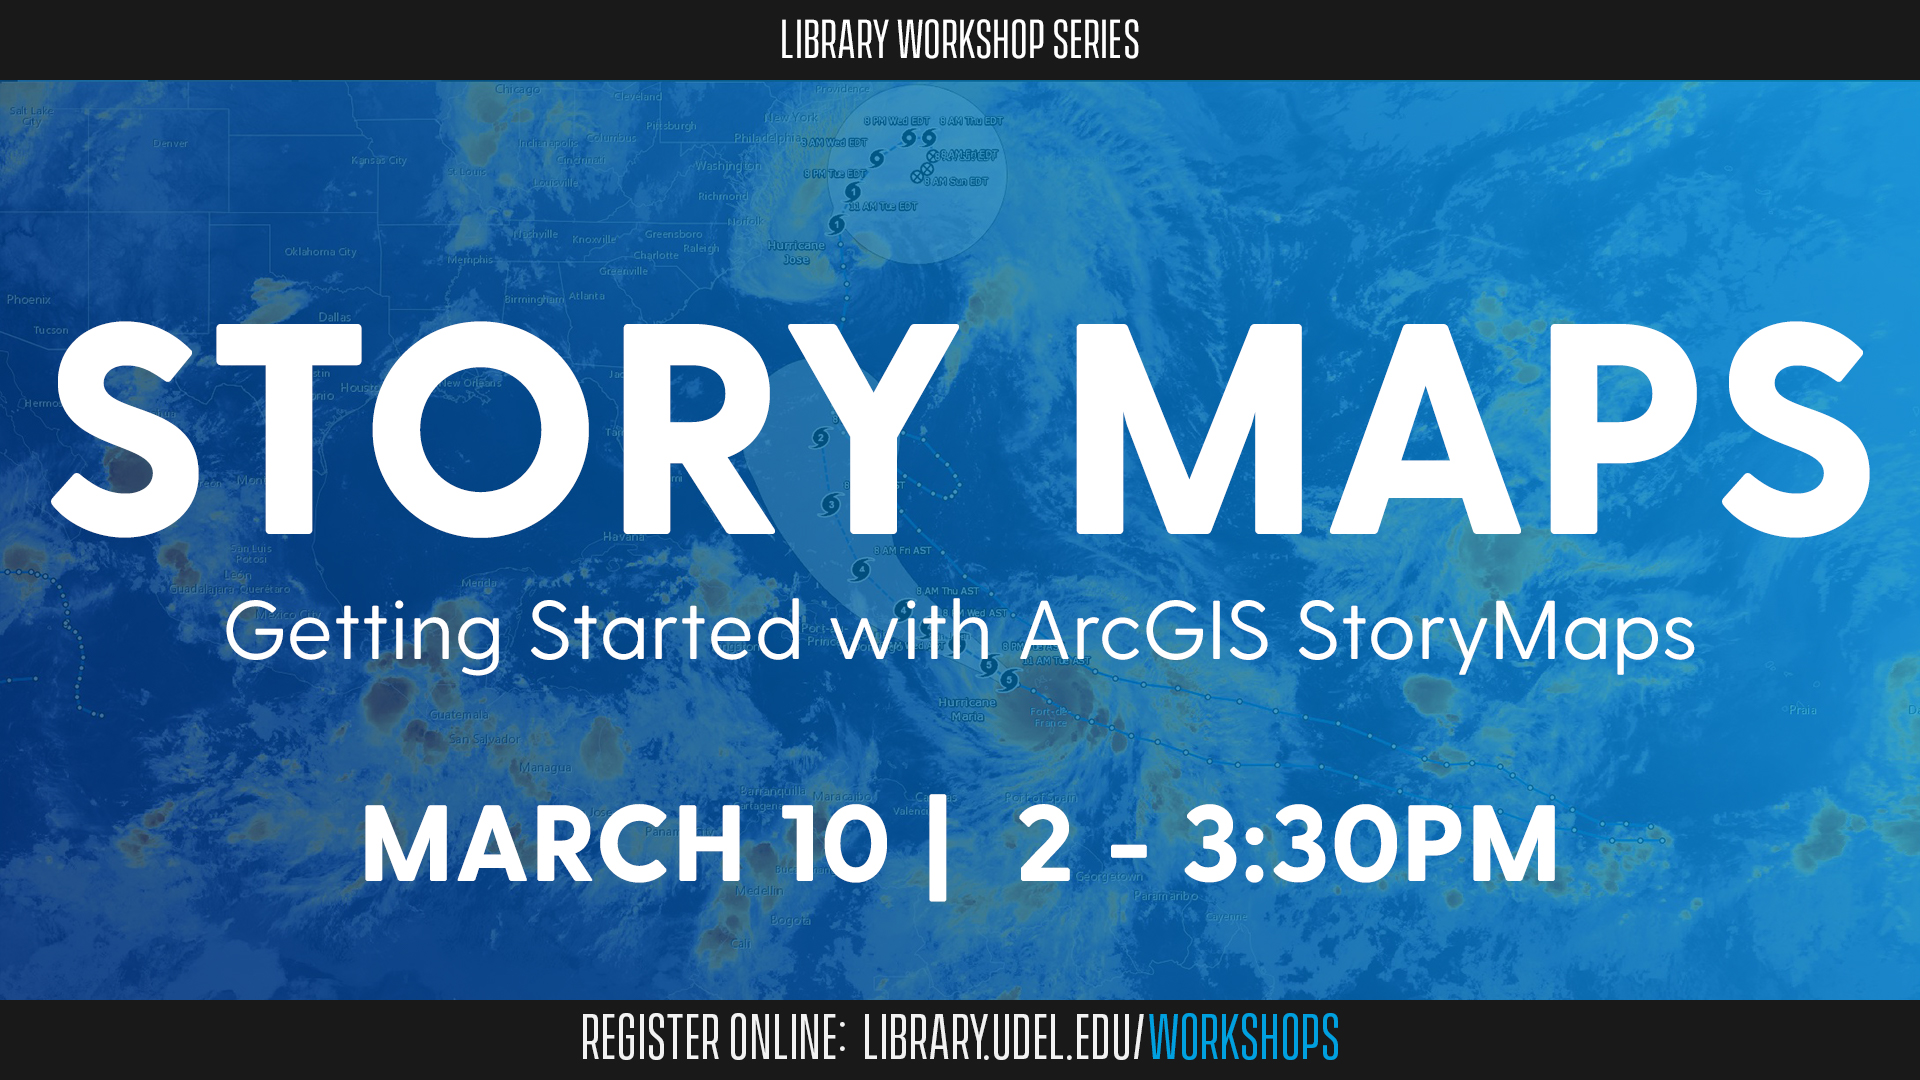 Getting Started with ArcGIS StoryMaps